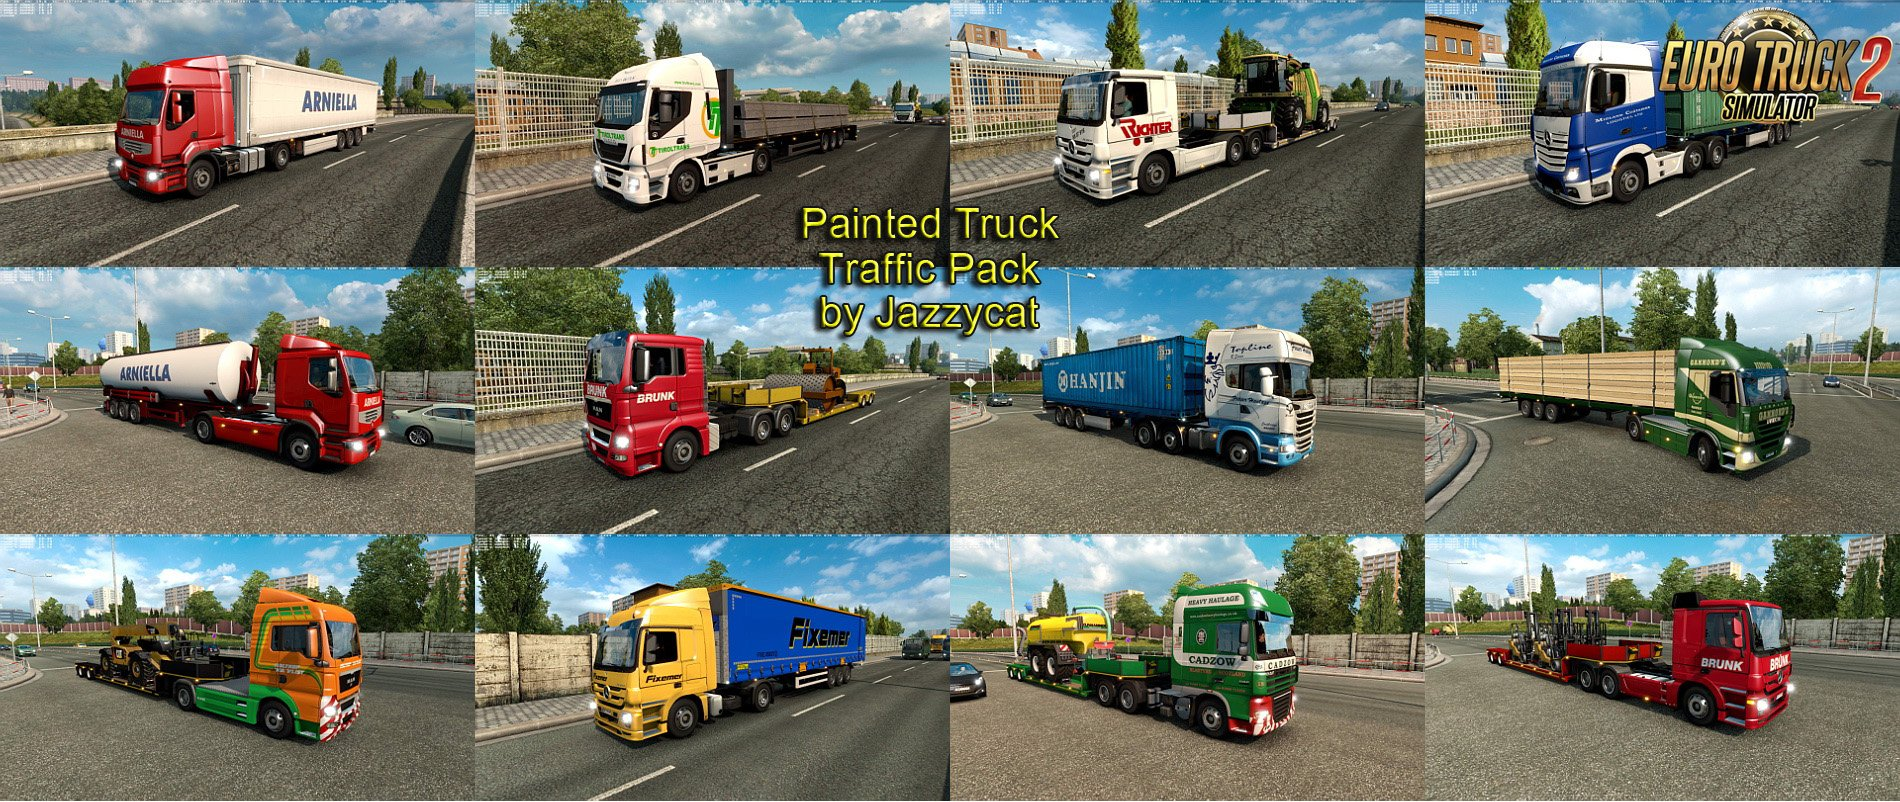 Painted Truck Traffic Pack v3.2.1 by Jazzycat [1.27.x]